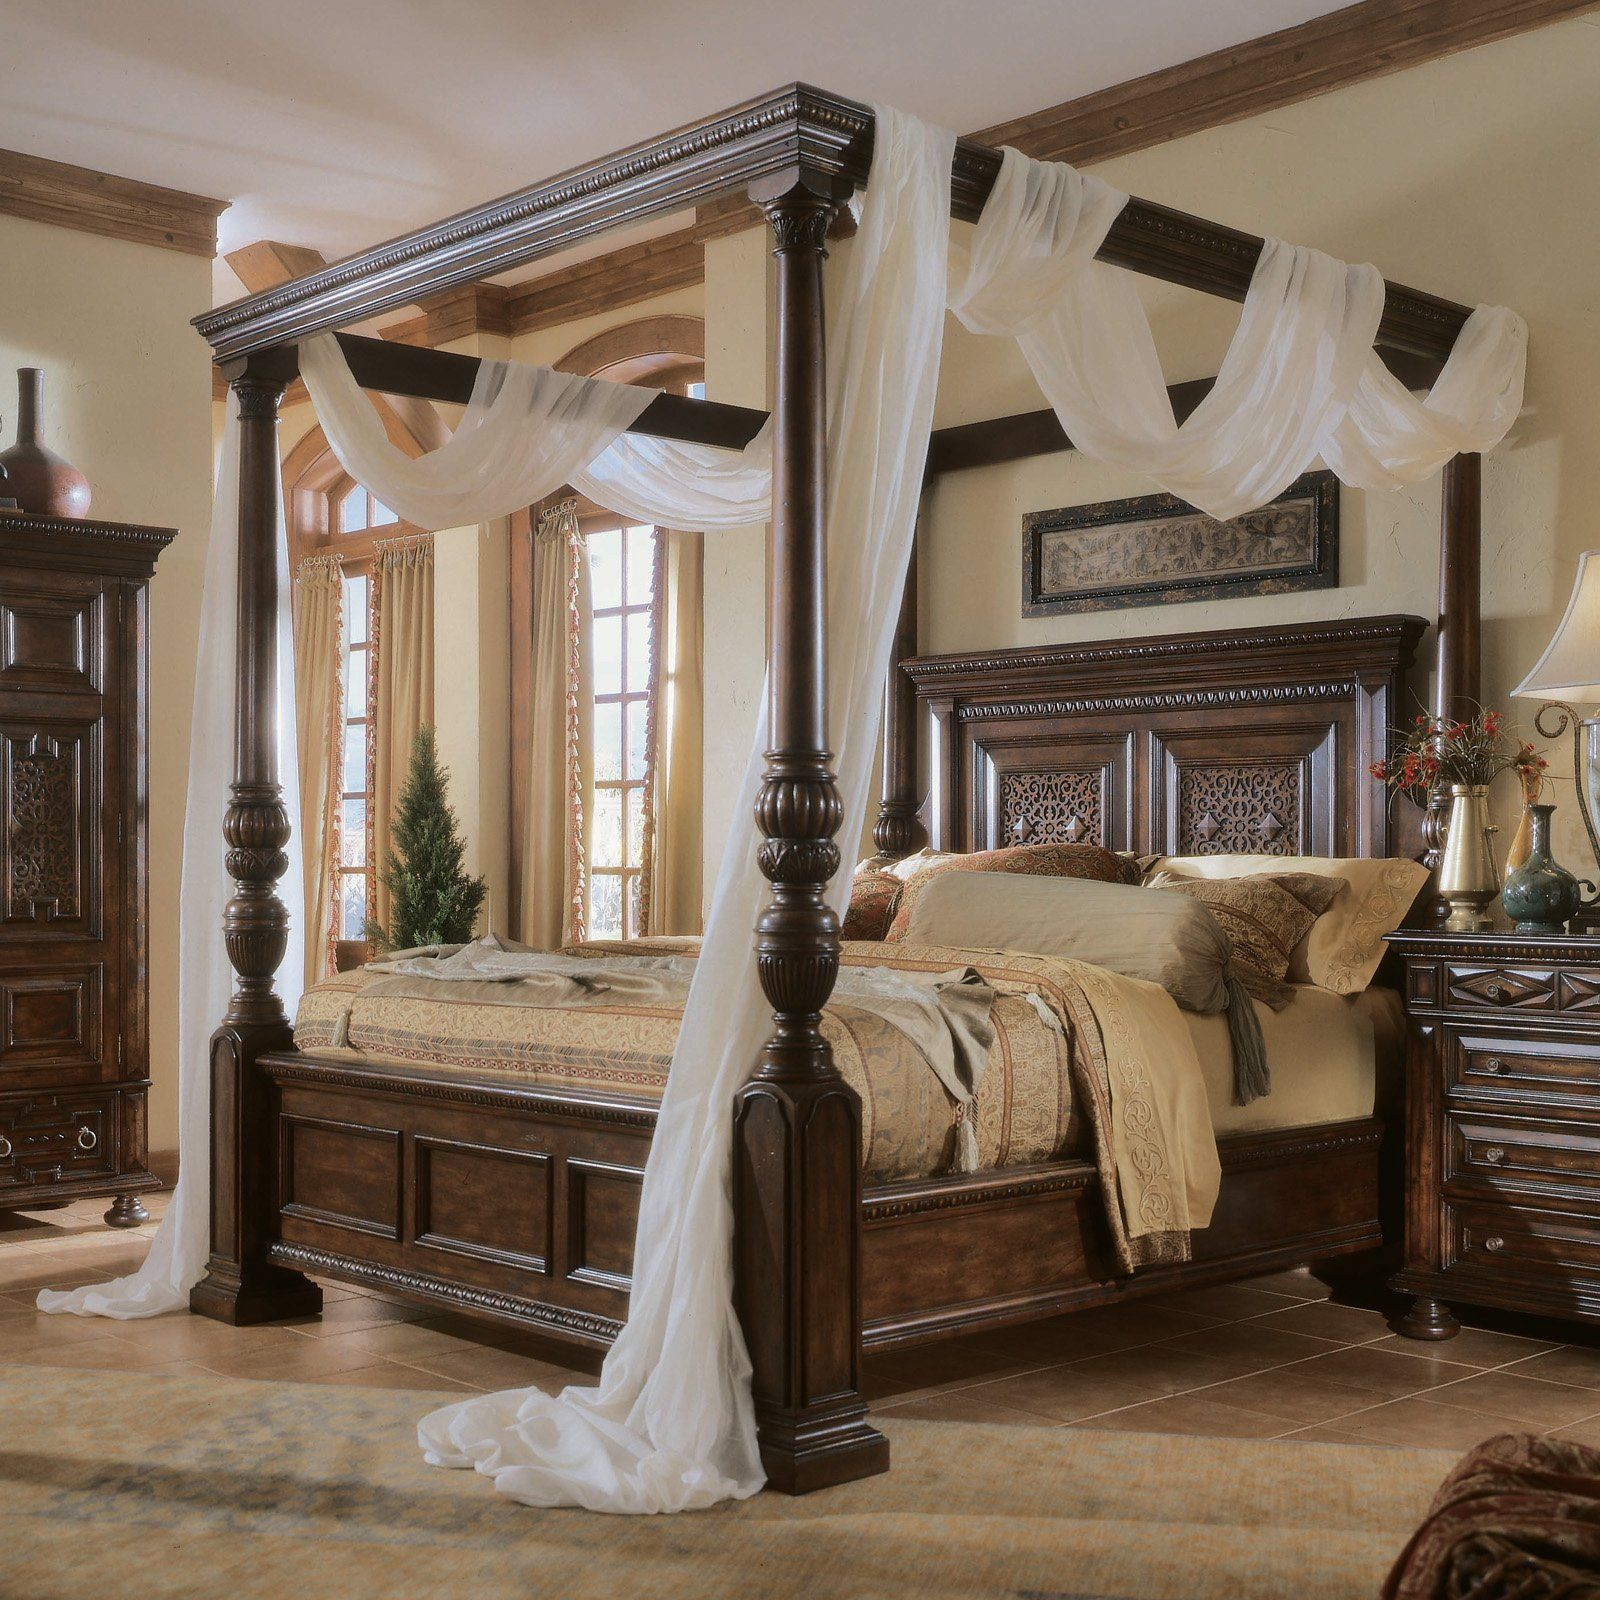 15 Most Beautiful Decorated And Designed Beds Canopy